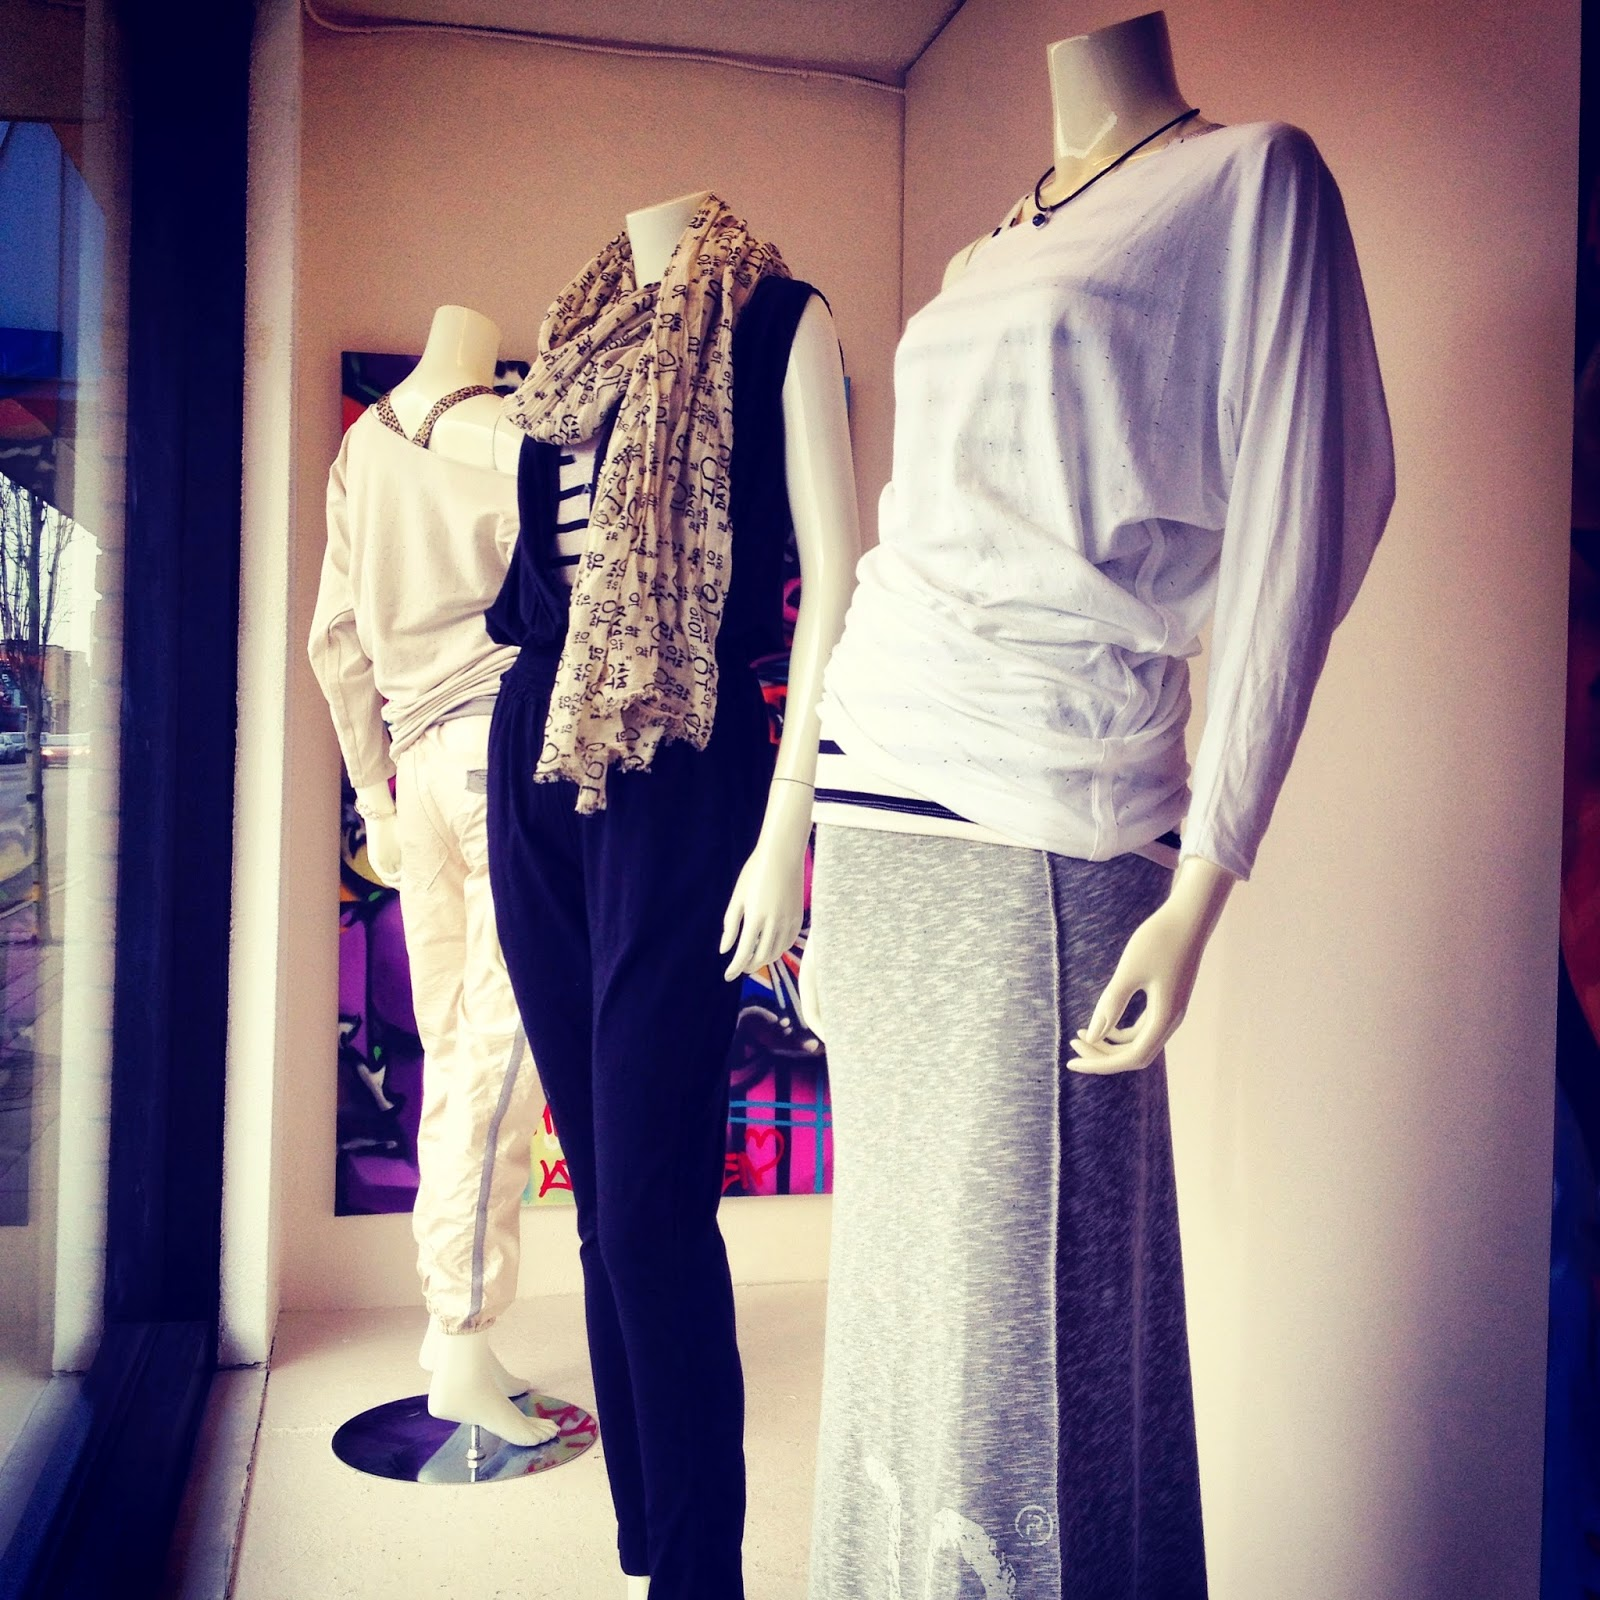 Window Display featuring 10 Days fashions. Visual Merchandising.